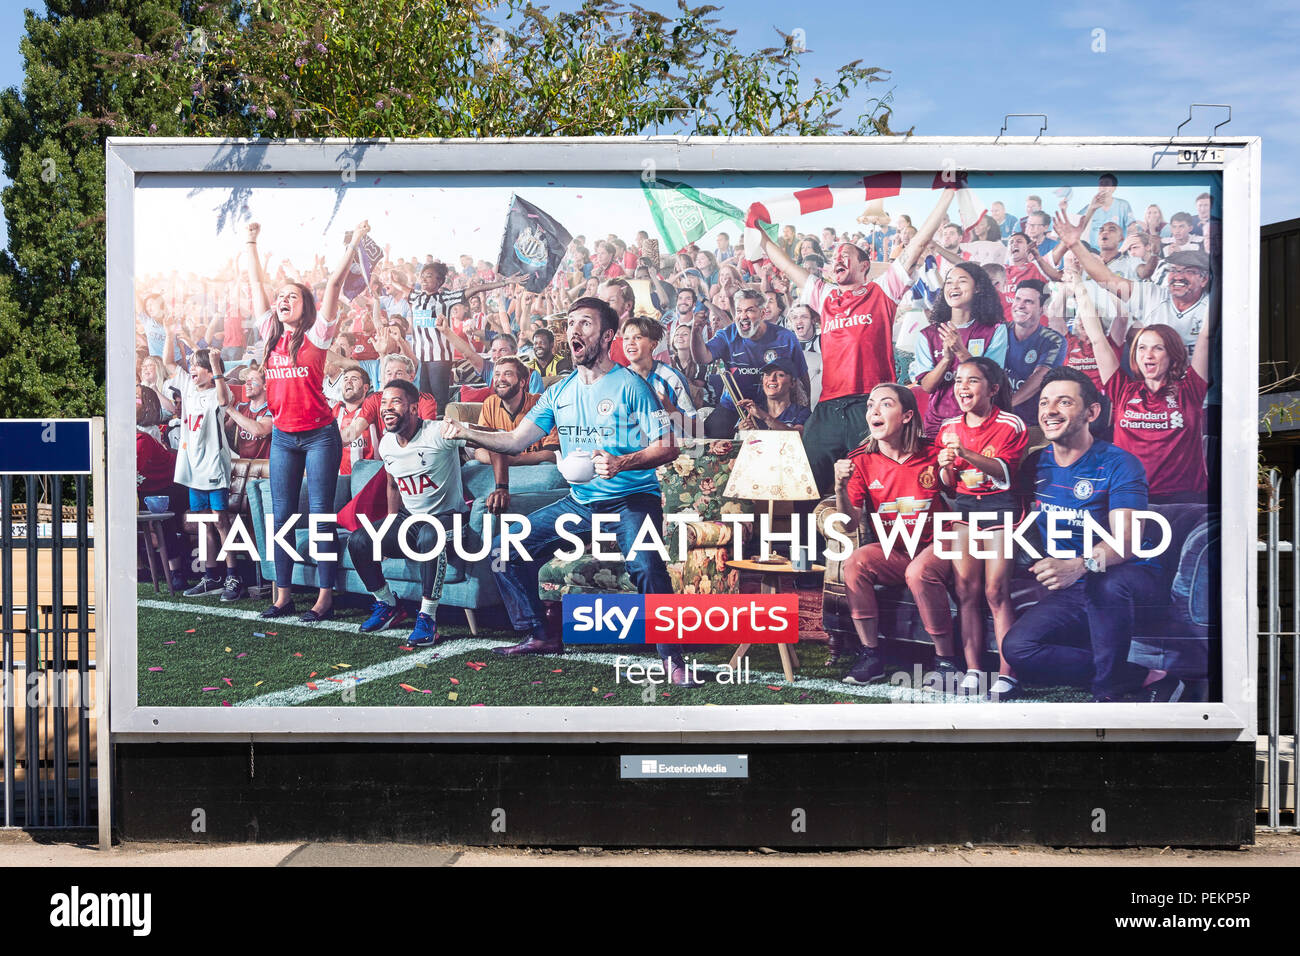 Sky Sports advertising hoarding on train platform, Ashford, Surrey, England, United Kingdom - Stock Image